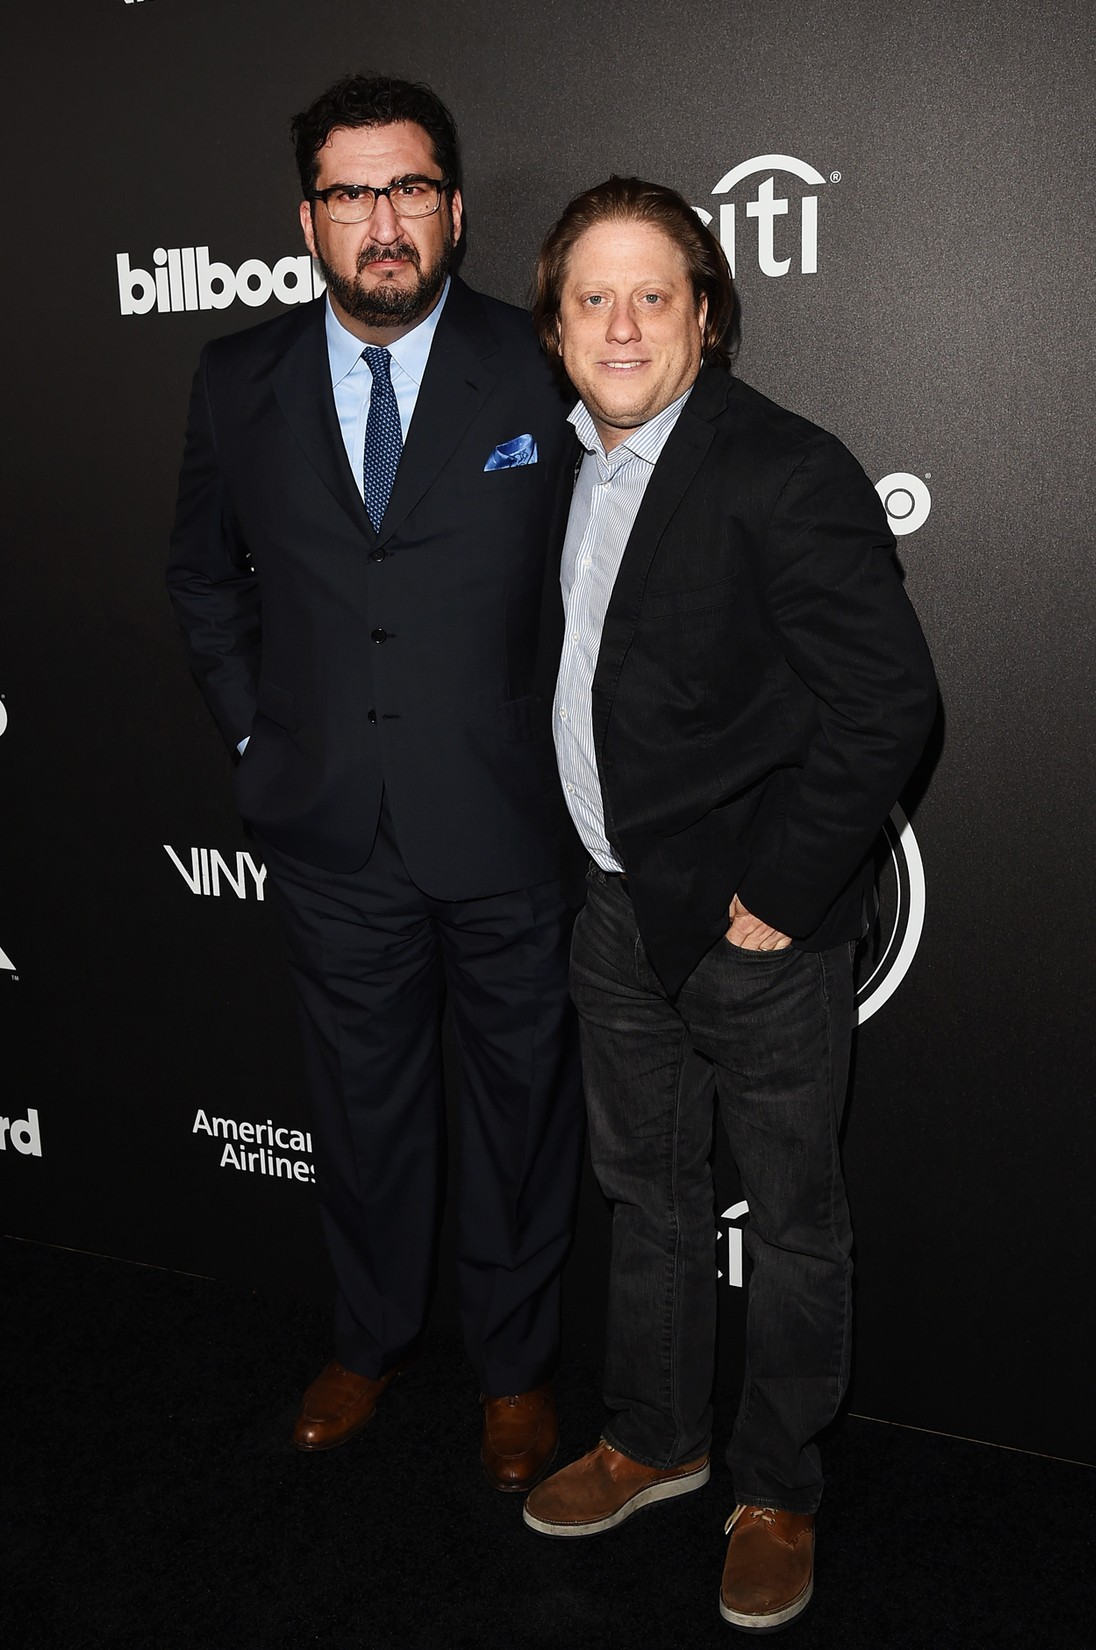 Billboard Editor-In-Chief Tony Gervino (L) and promoter Peter Shapiro attend 2016 Billboard Power 100